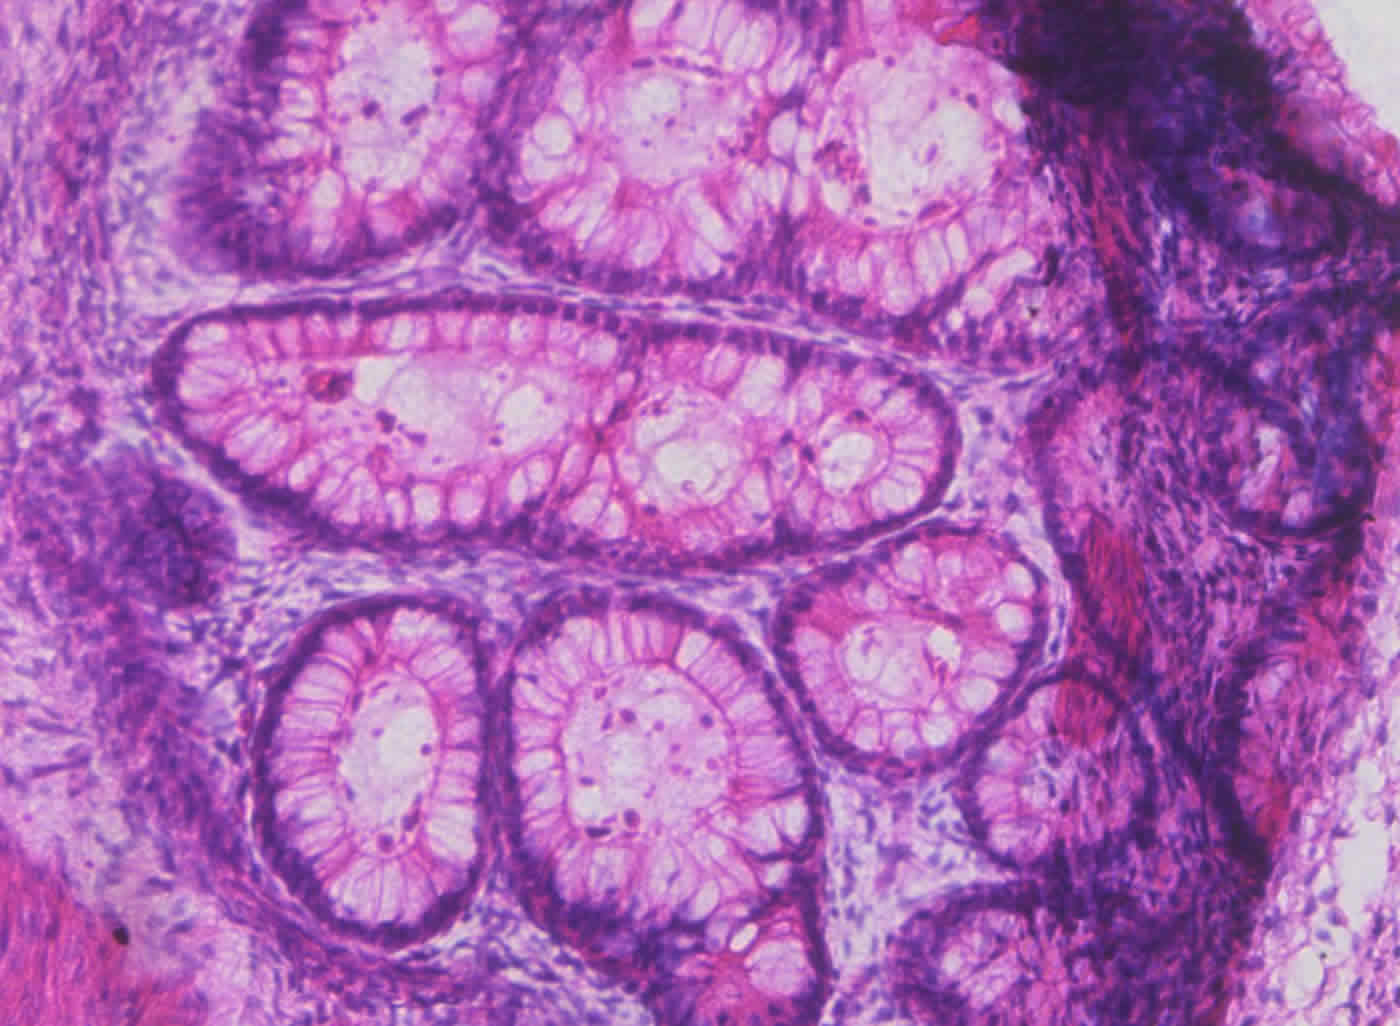 Image shows a cross section from a teratoma.